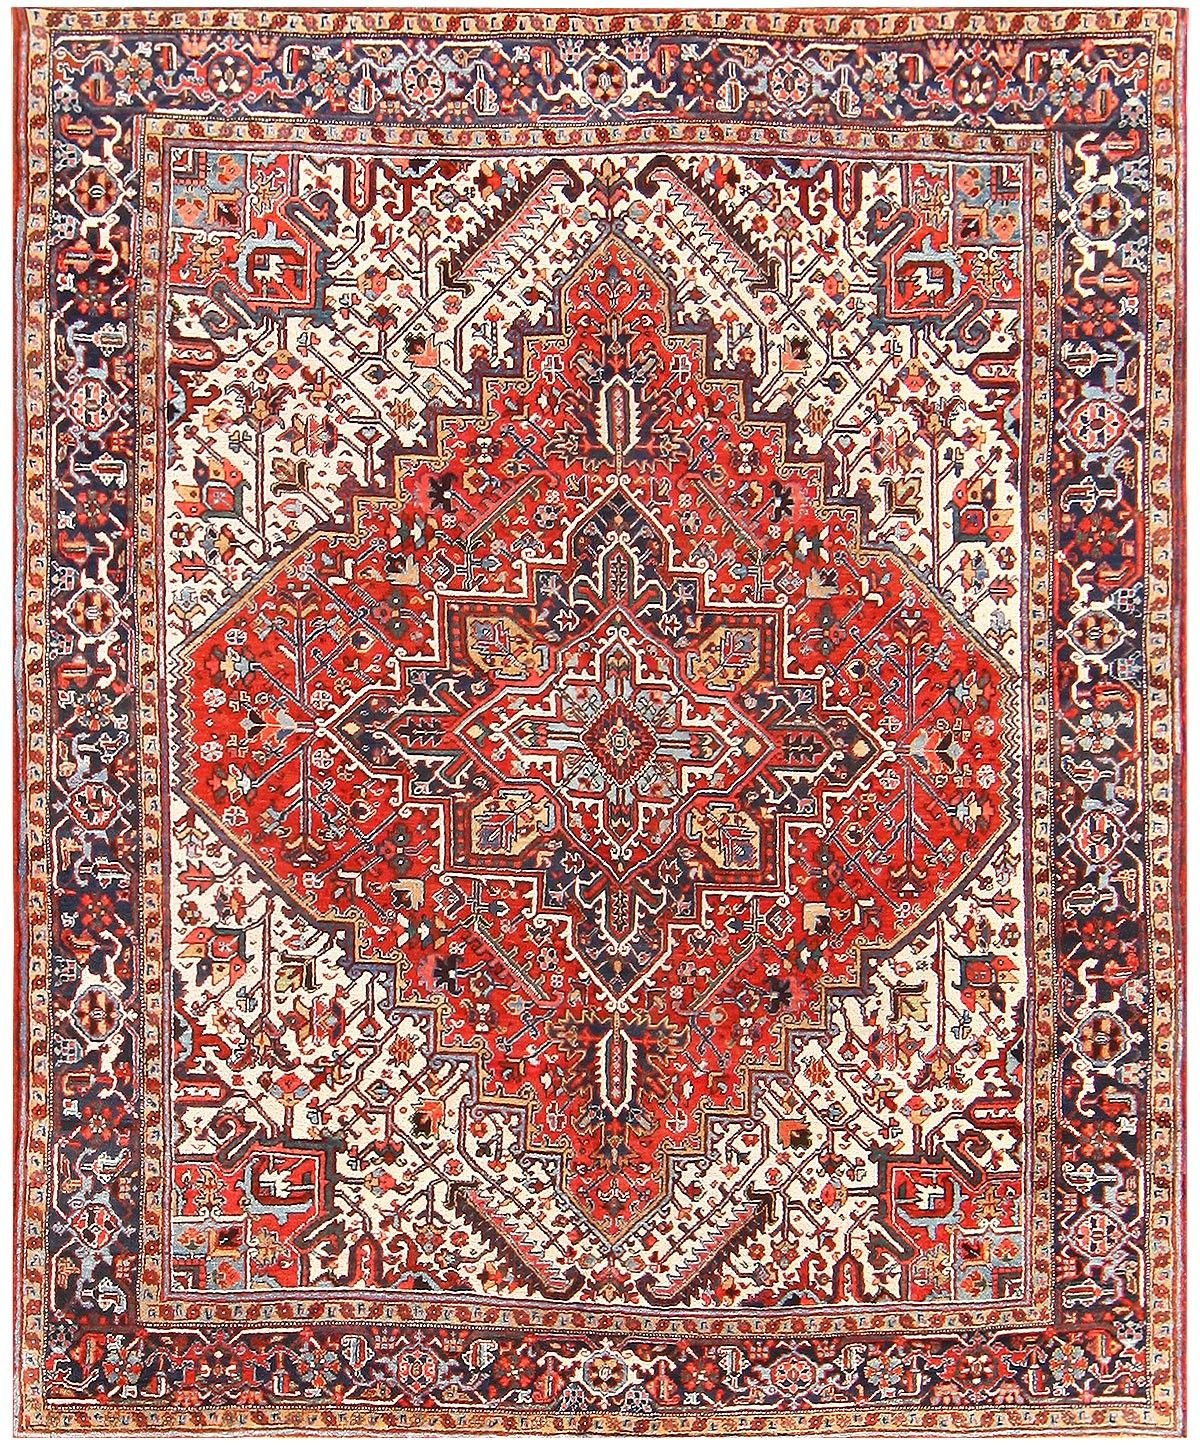 Teppich Auf Englisch Carpet Antique Persian Heriz Rug 48313 By Nazmiyal Carpet